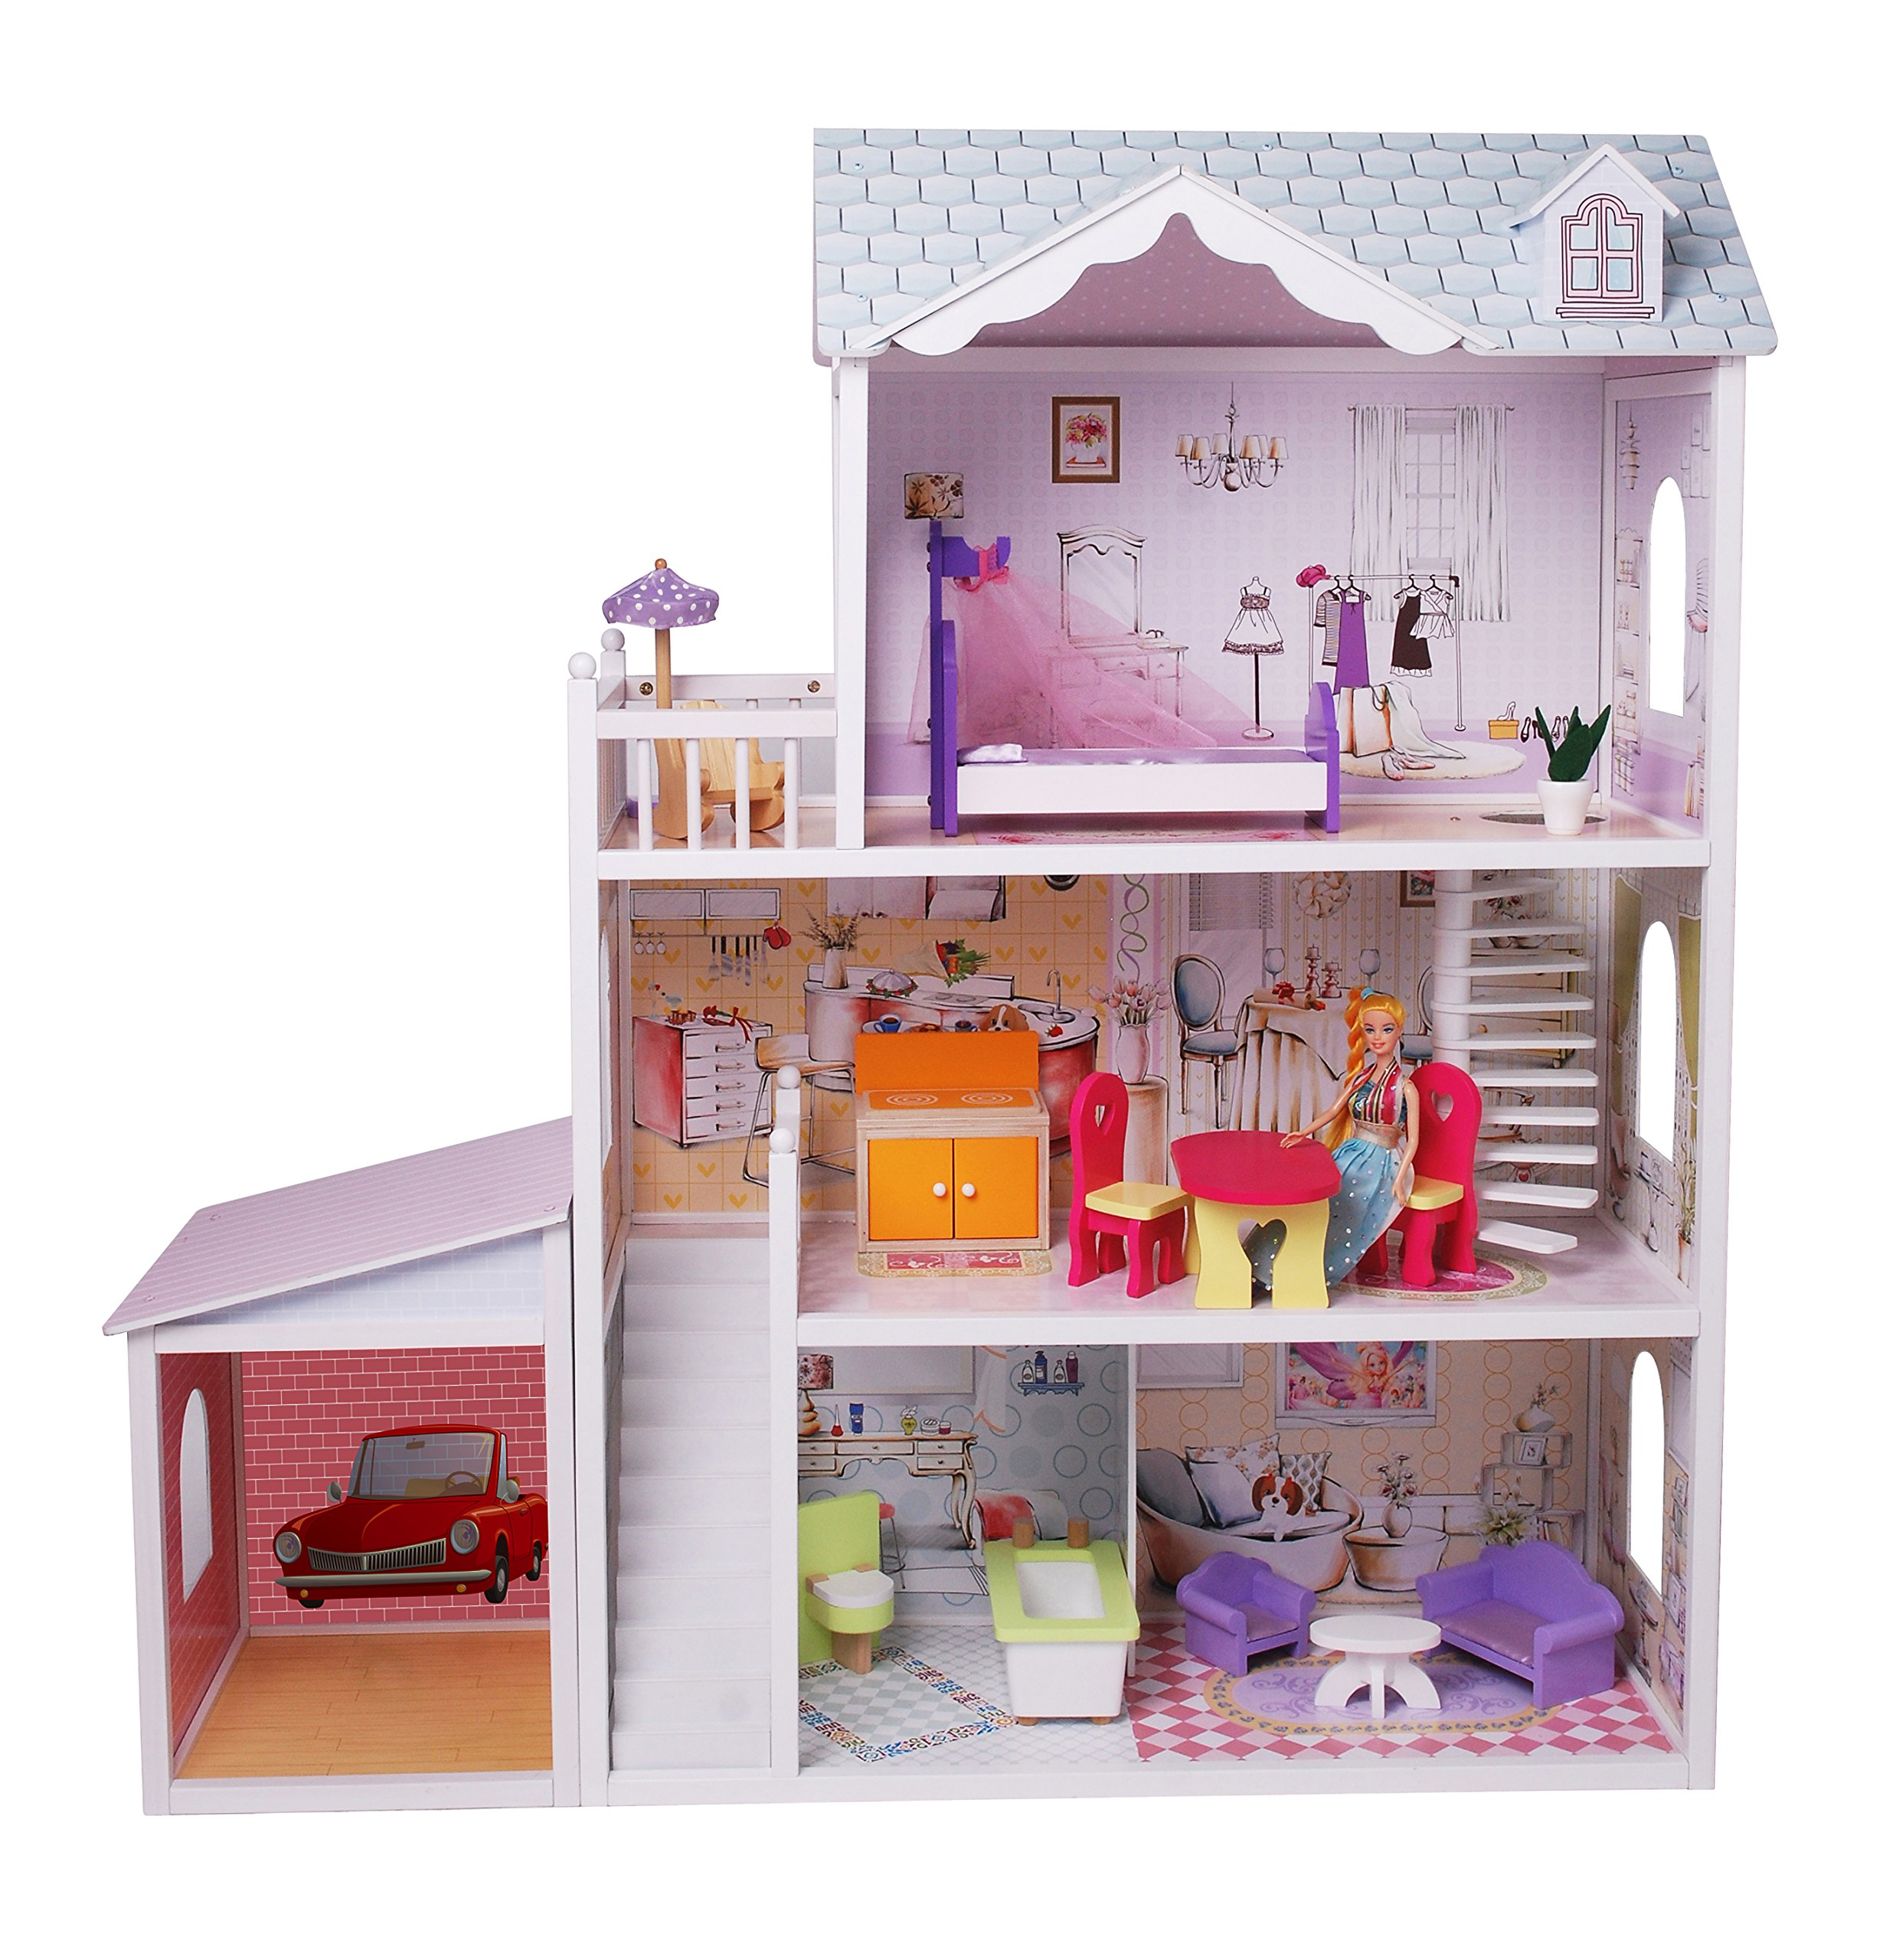 Wooden dollhouse with detached garage and 13 furniture pieces - over 4' tall